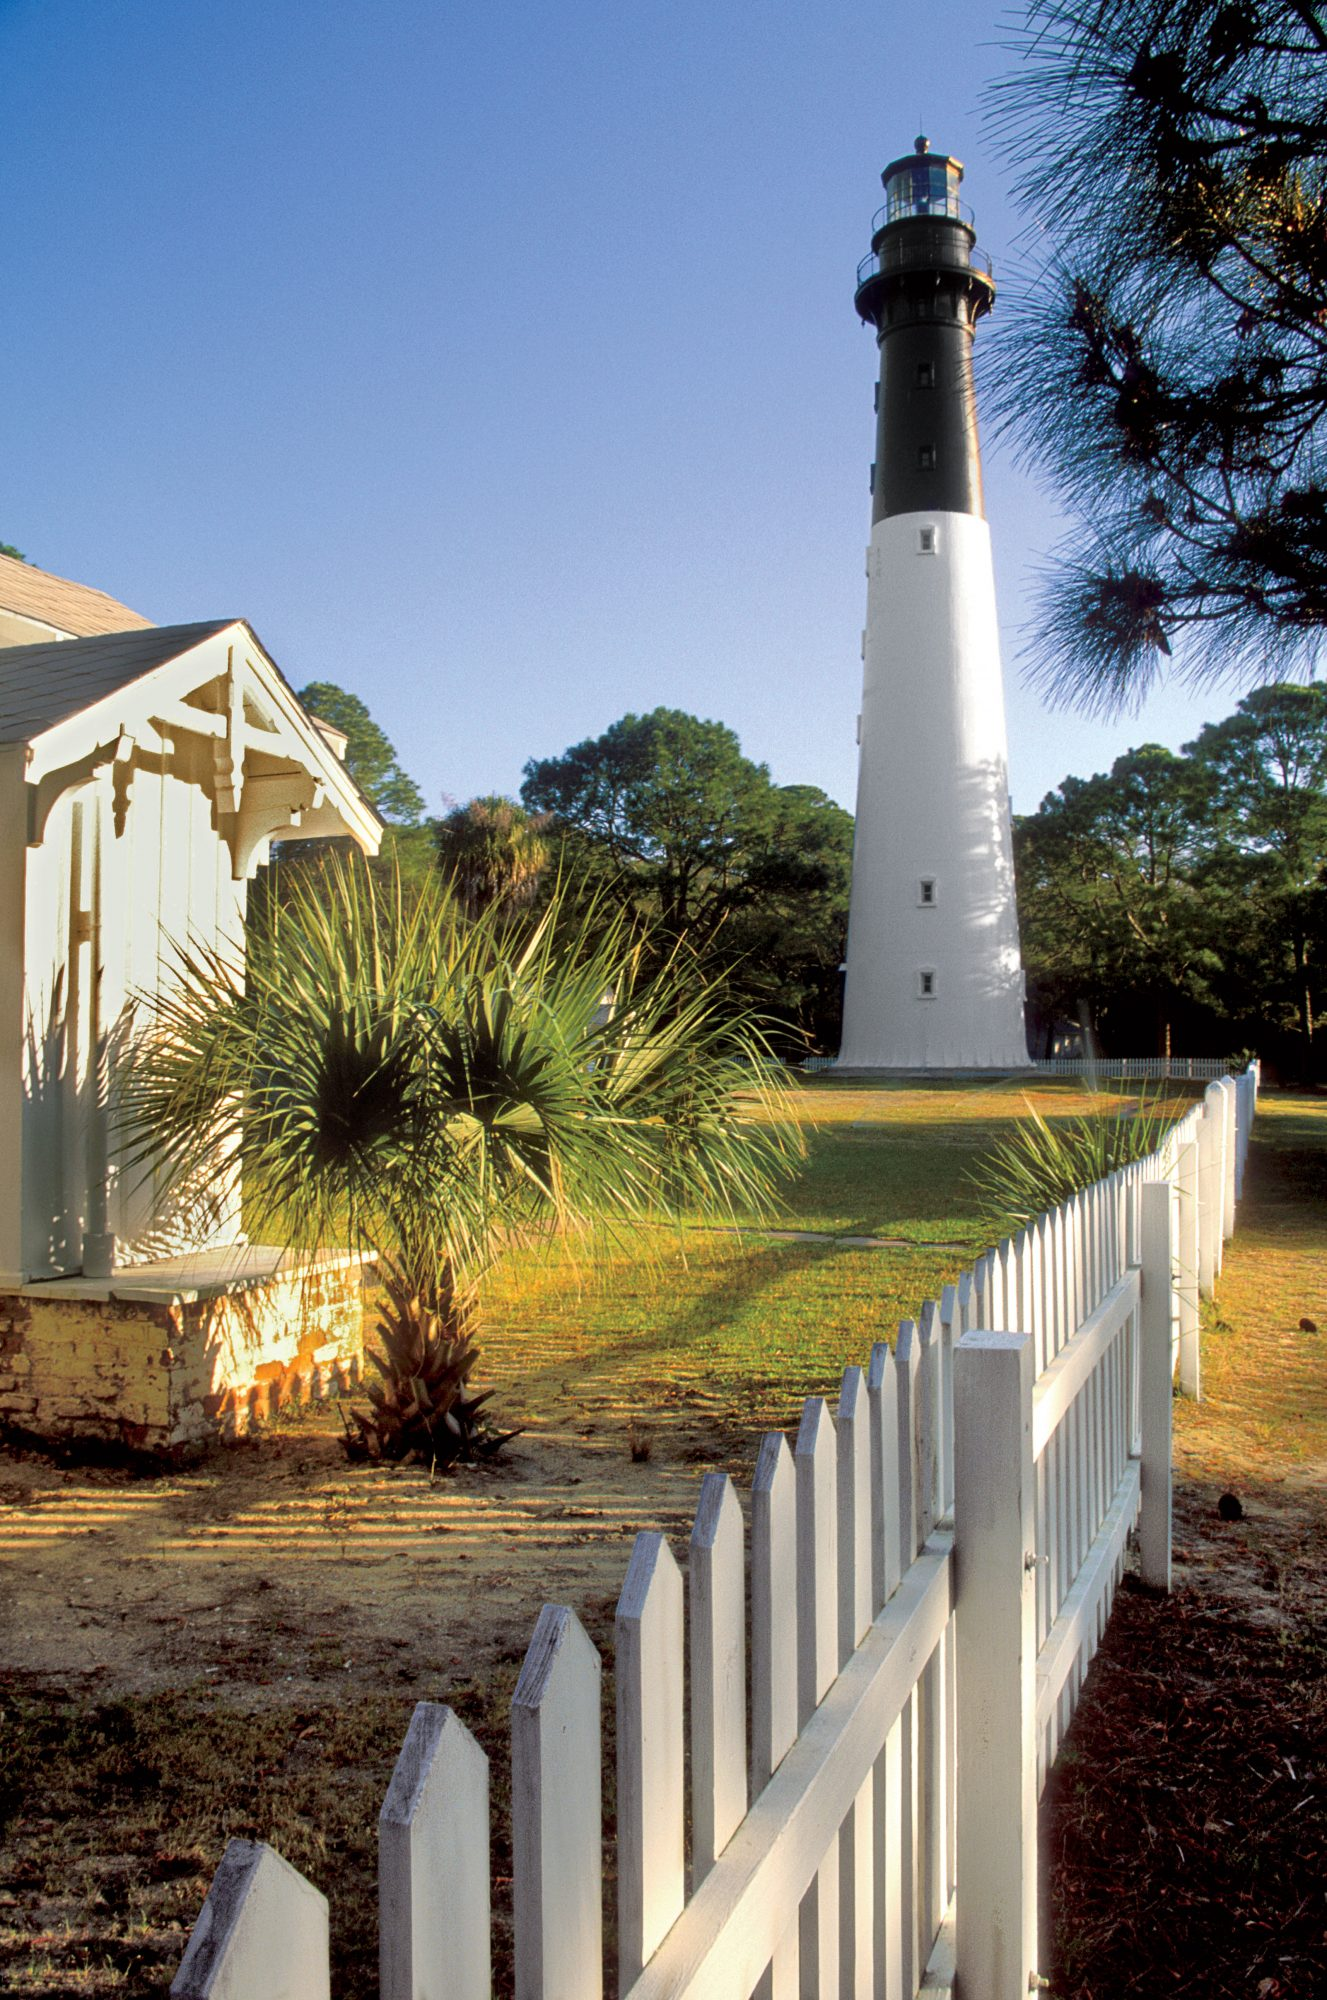 Hunting Island State Park in South Carolina